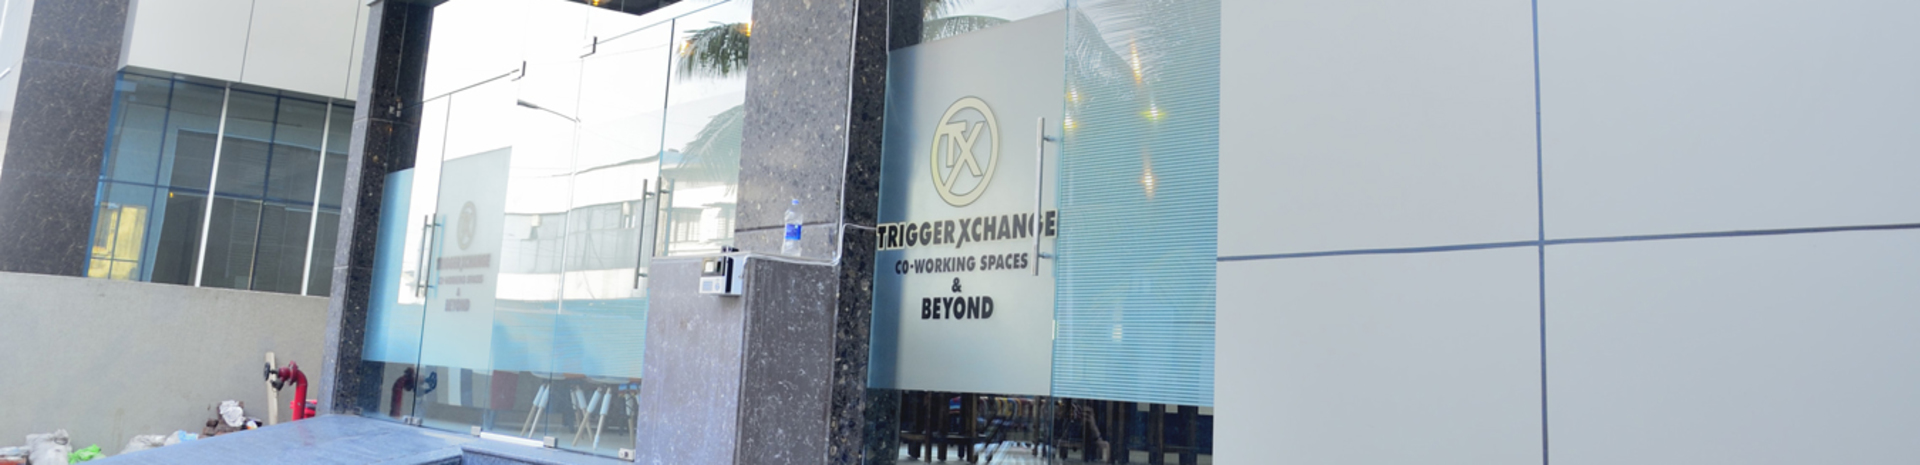 Triggerxchange, Navi Mumbai - Read Reviews & Book Online